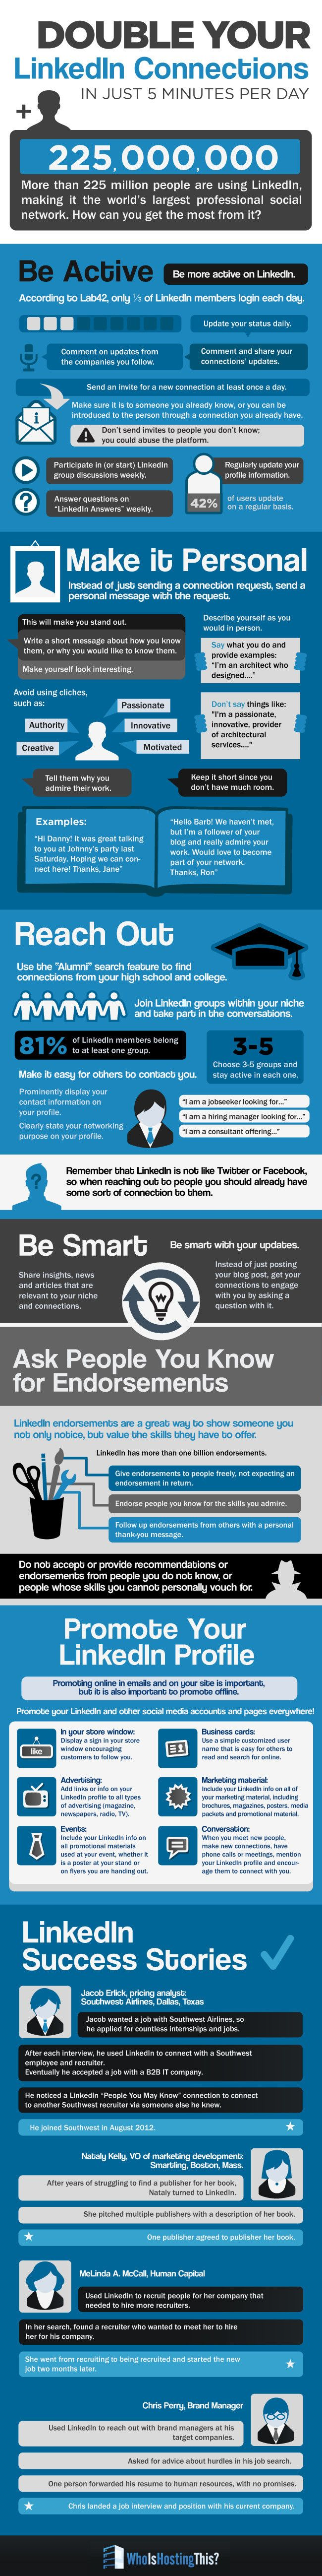 "SOCIAL MEDIA - ""How to Double Your #LinkedIn Connections [INFOGRAPHIC]."" Not sure if the 'promise' is realistic but some good advice on the management of your Linked'In account to increase contacts and traffic........................................................... Visit Now!  OwnItLand.com"